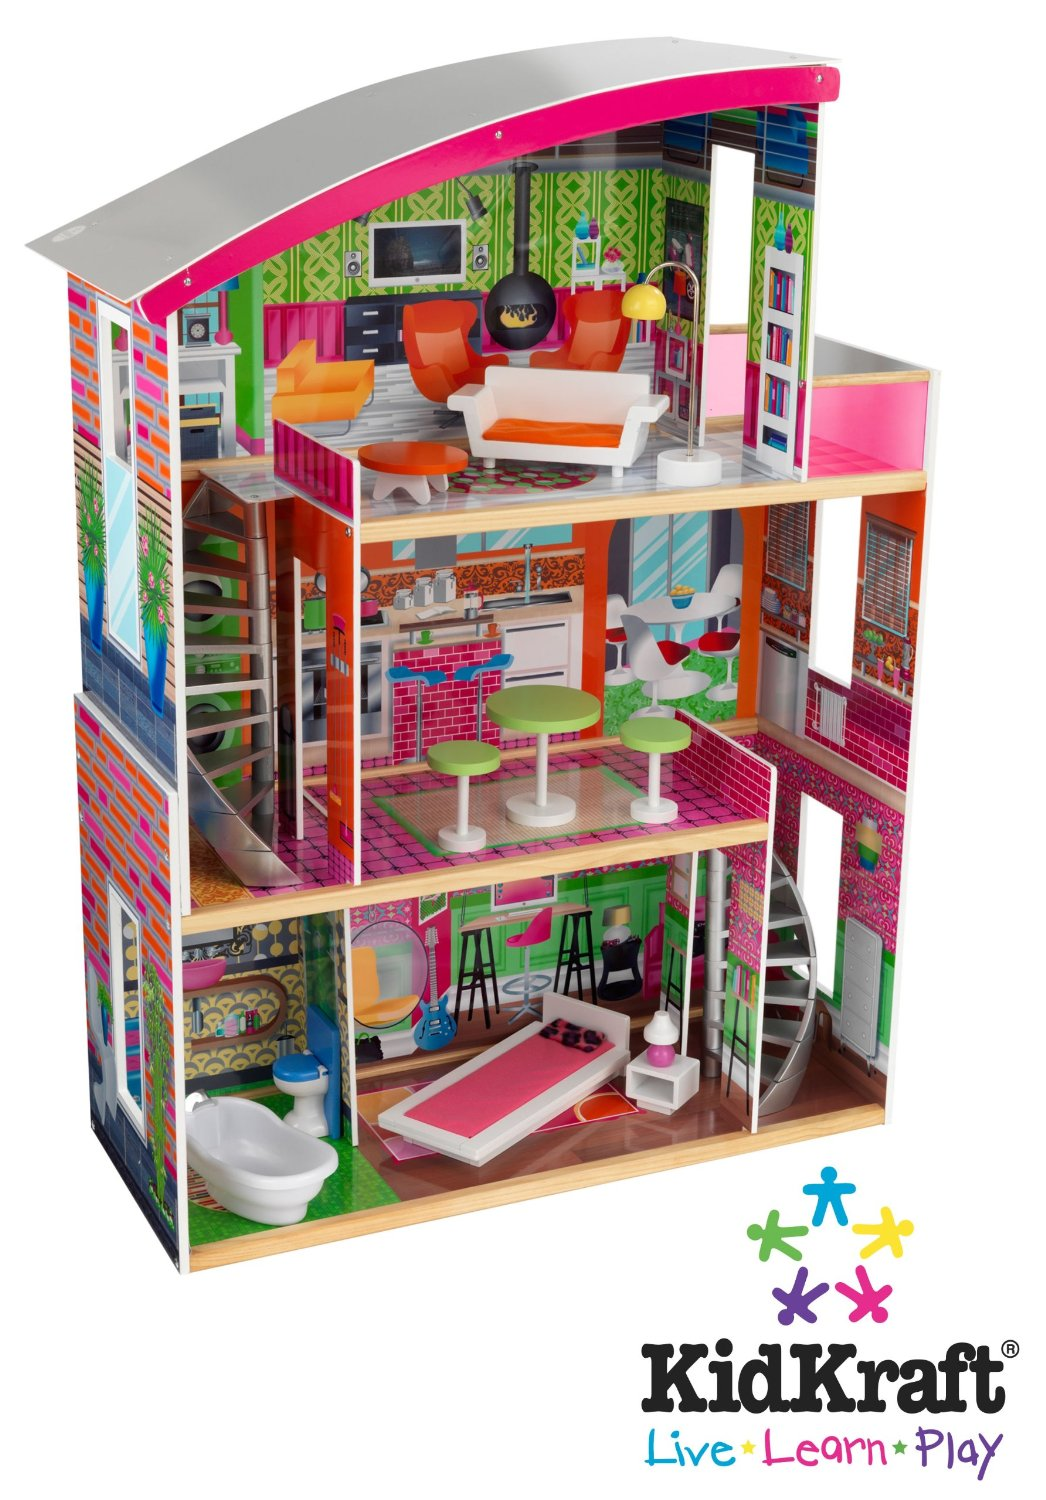 Charming Kidkraft Dollhouse In Colorful Design With Triple Tier Design For Nursery Decor Ideas